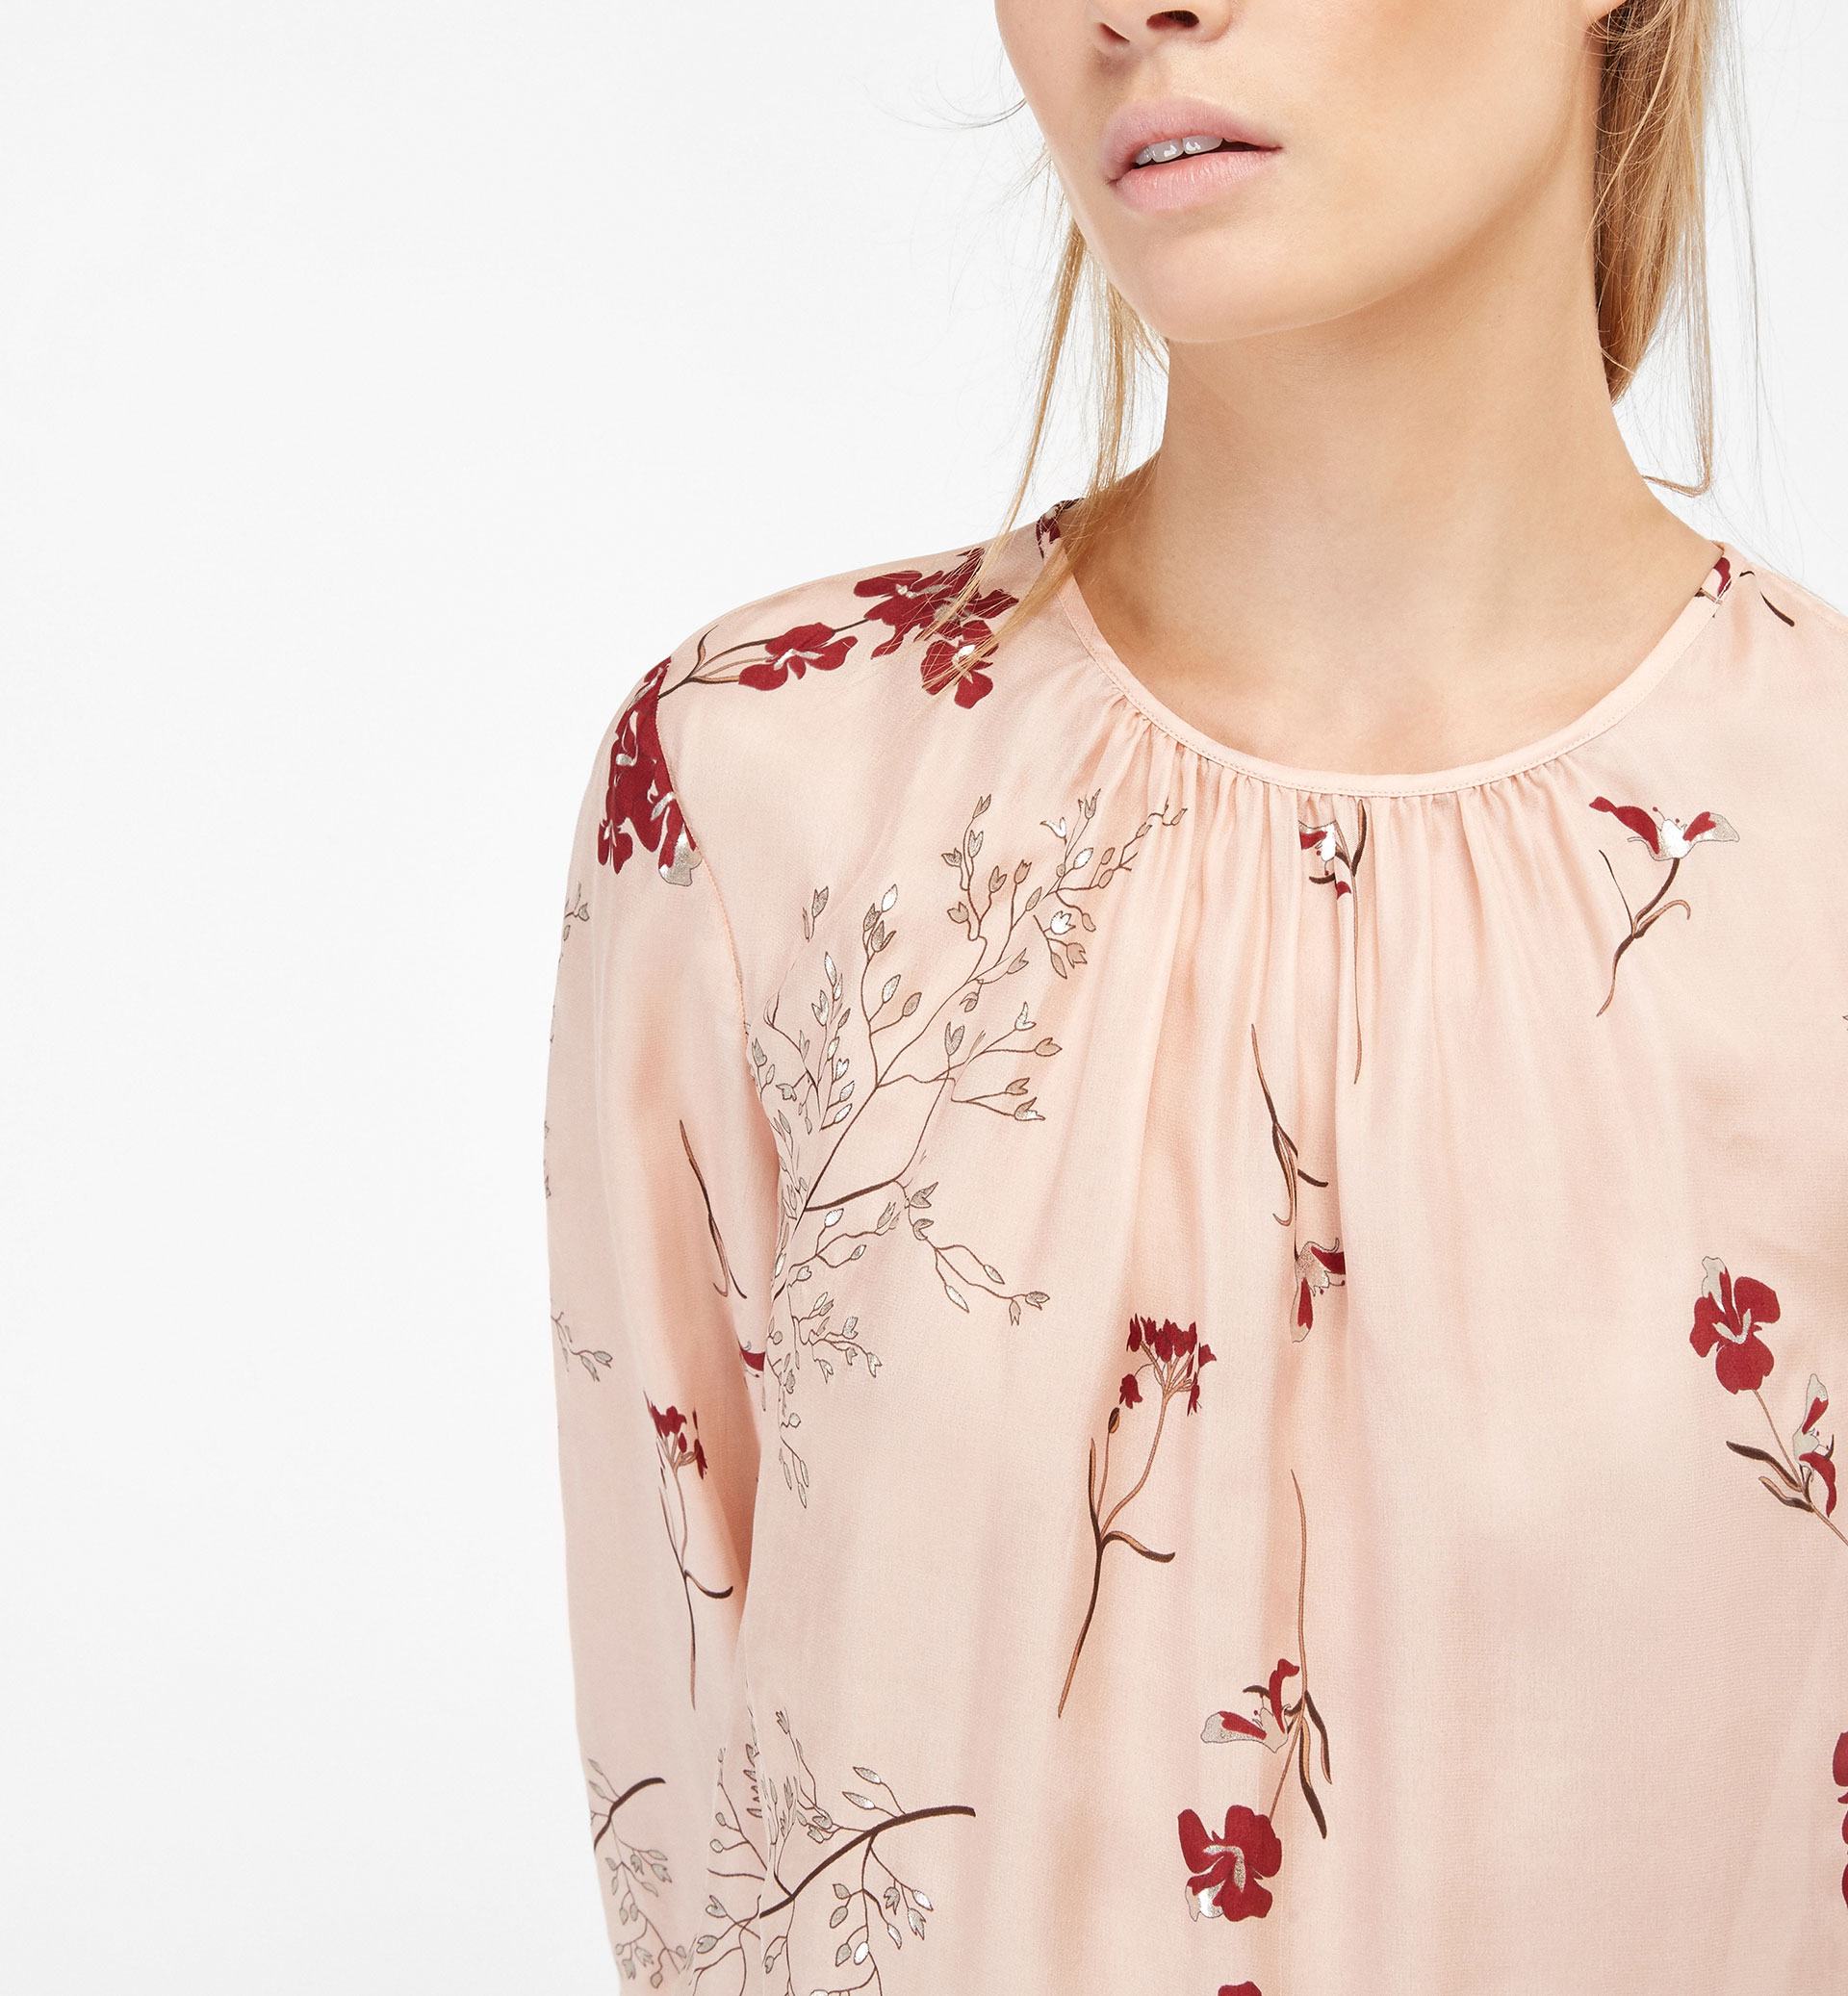 PRINTED BLOUSE WITH SILVER-TONED DETAILS